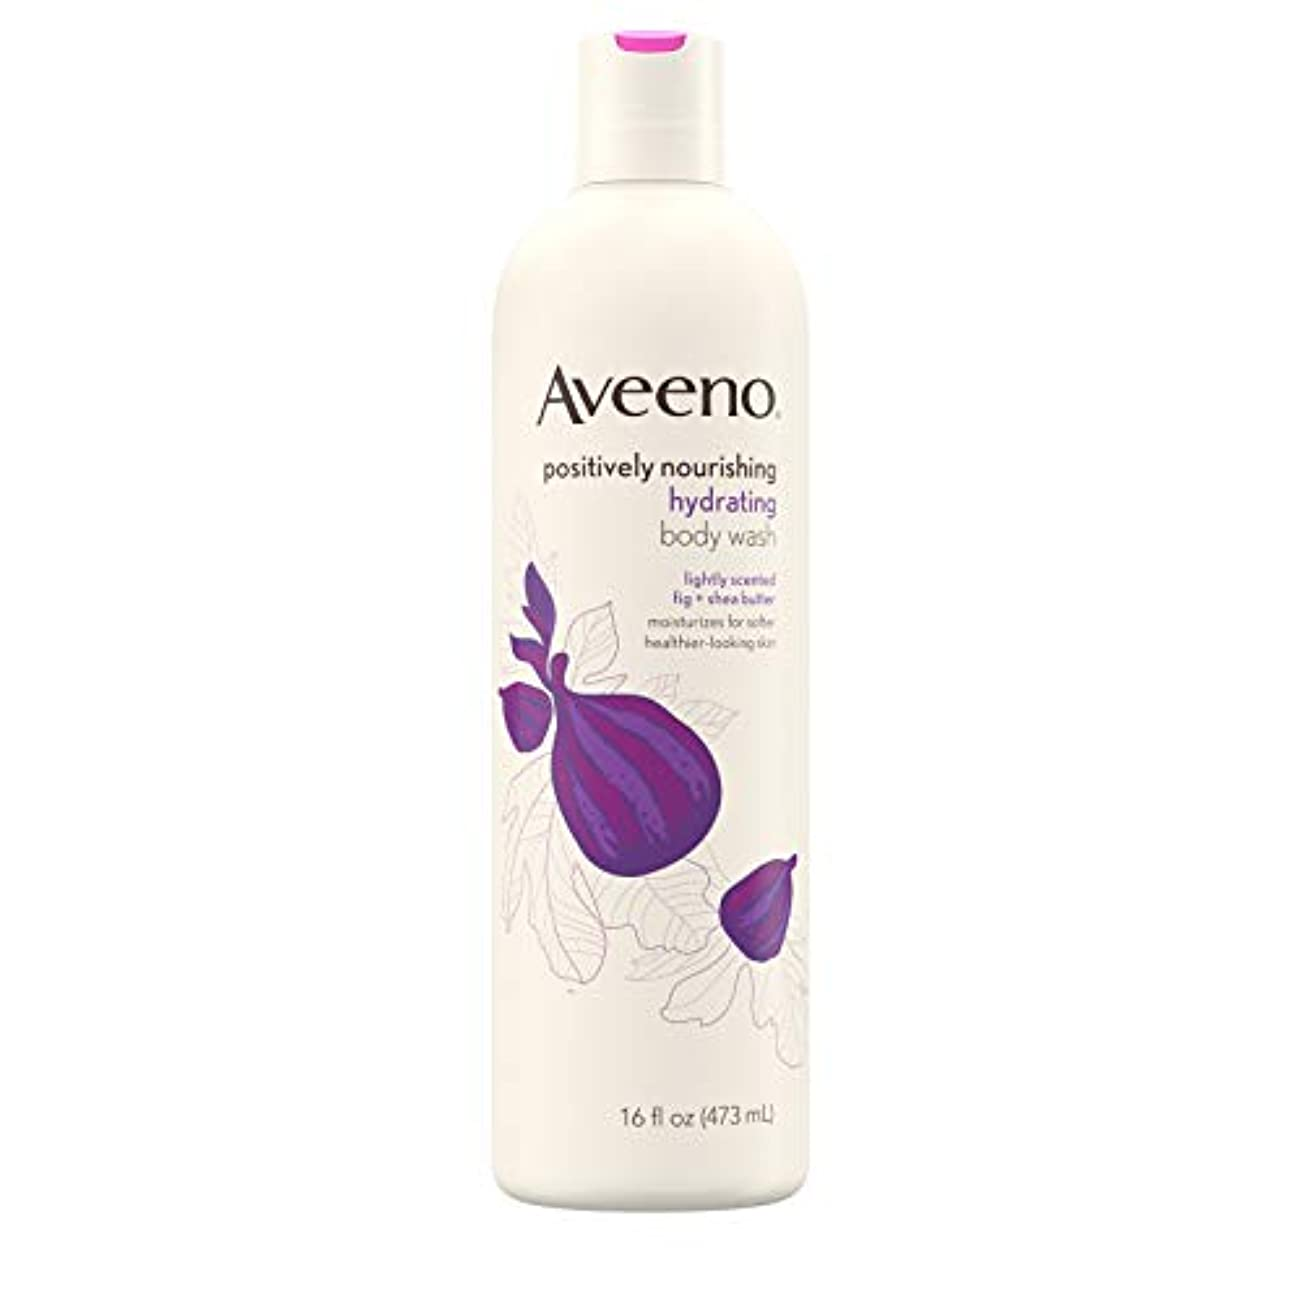 社交的敬意を表するアンデス山脈New Aveeno Positively Nourishing New Aveeno Ultra Hydrating Body Wash, 470ml